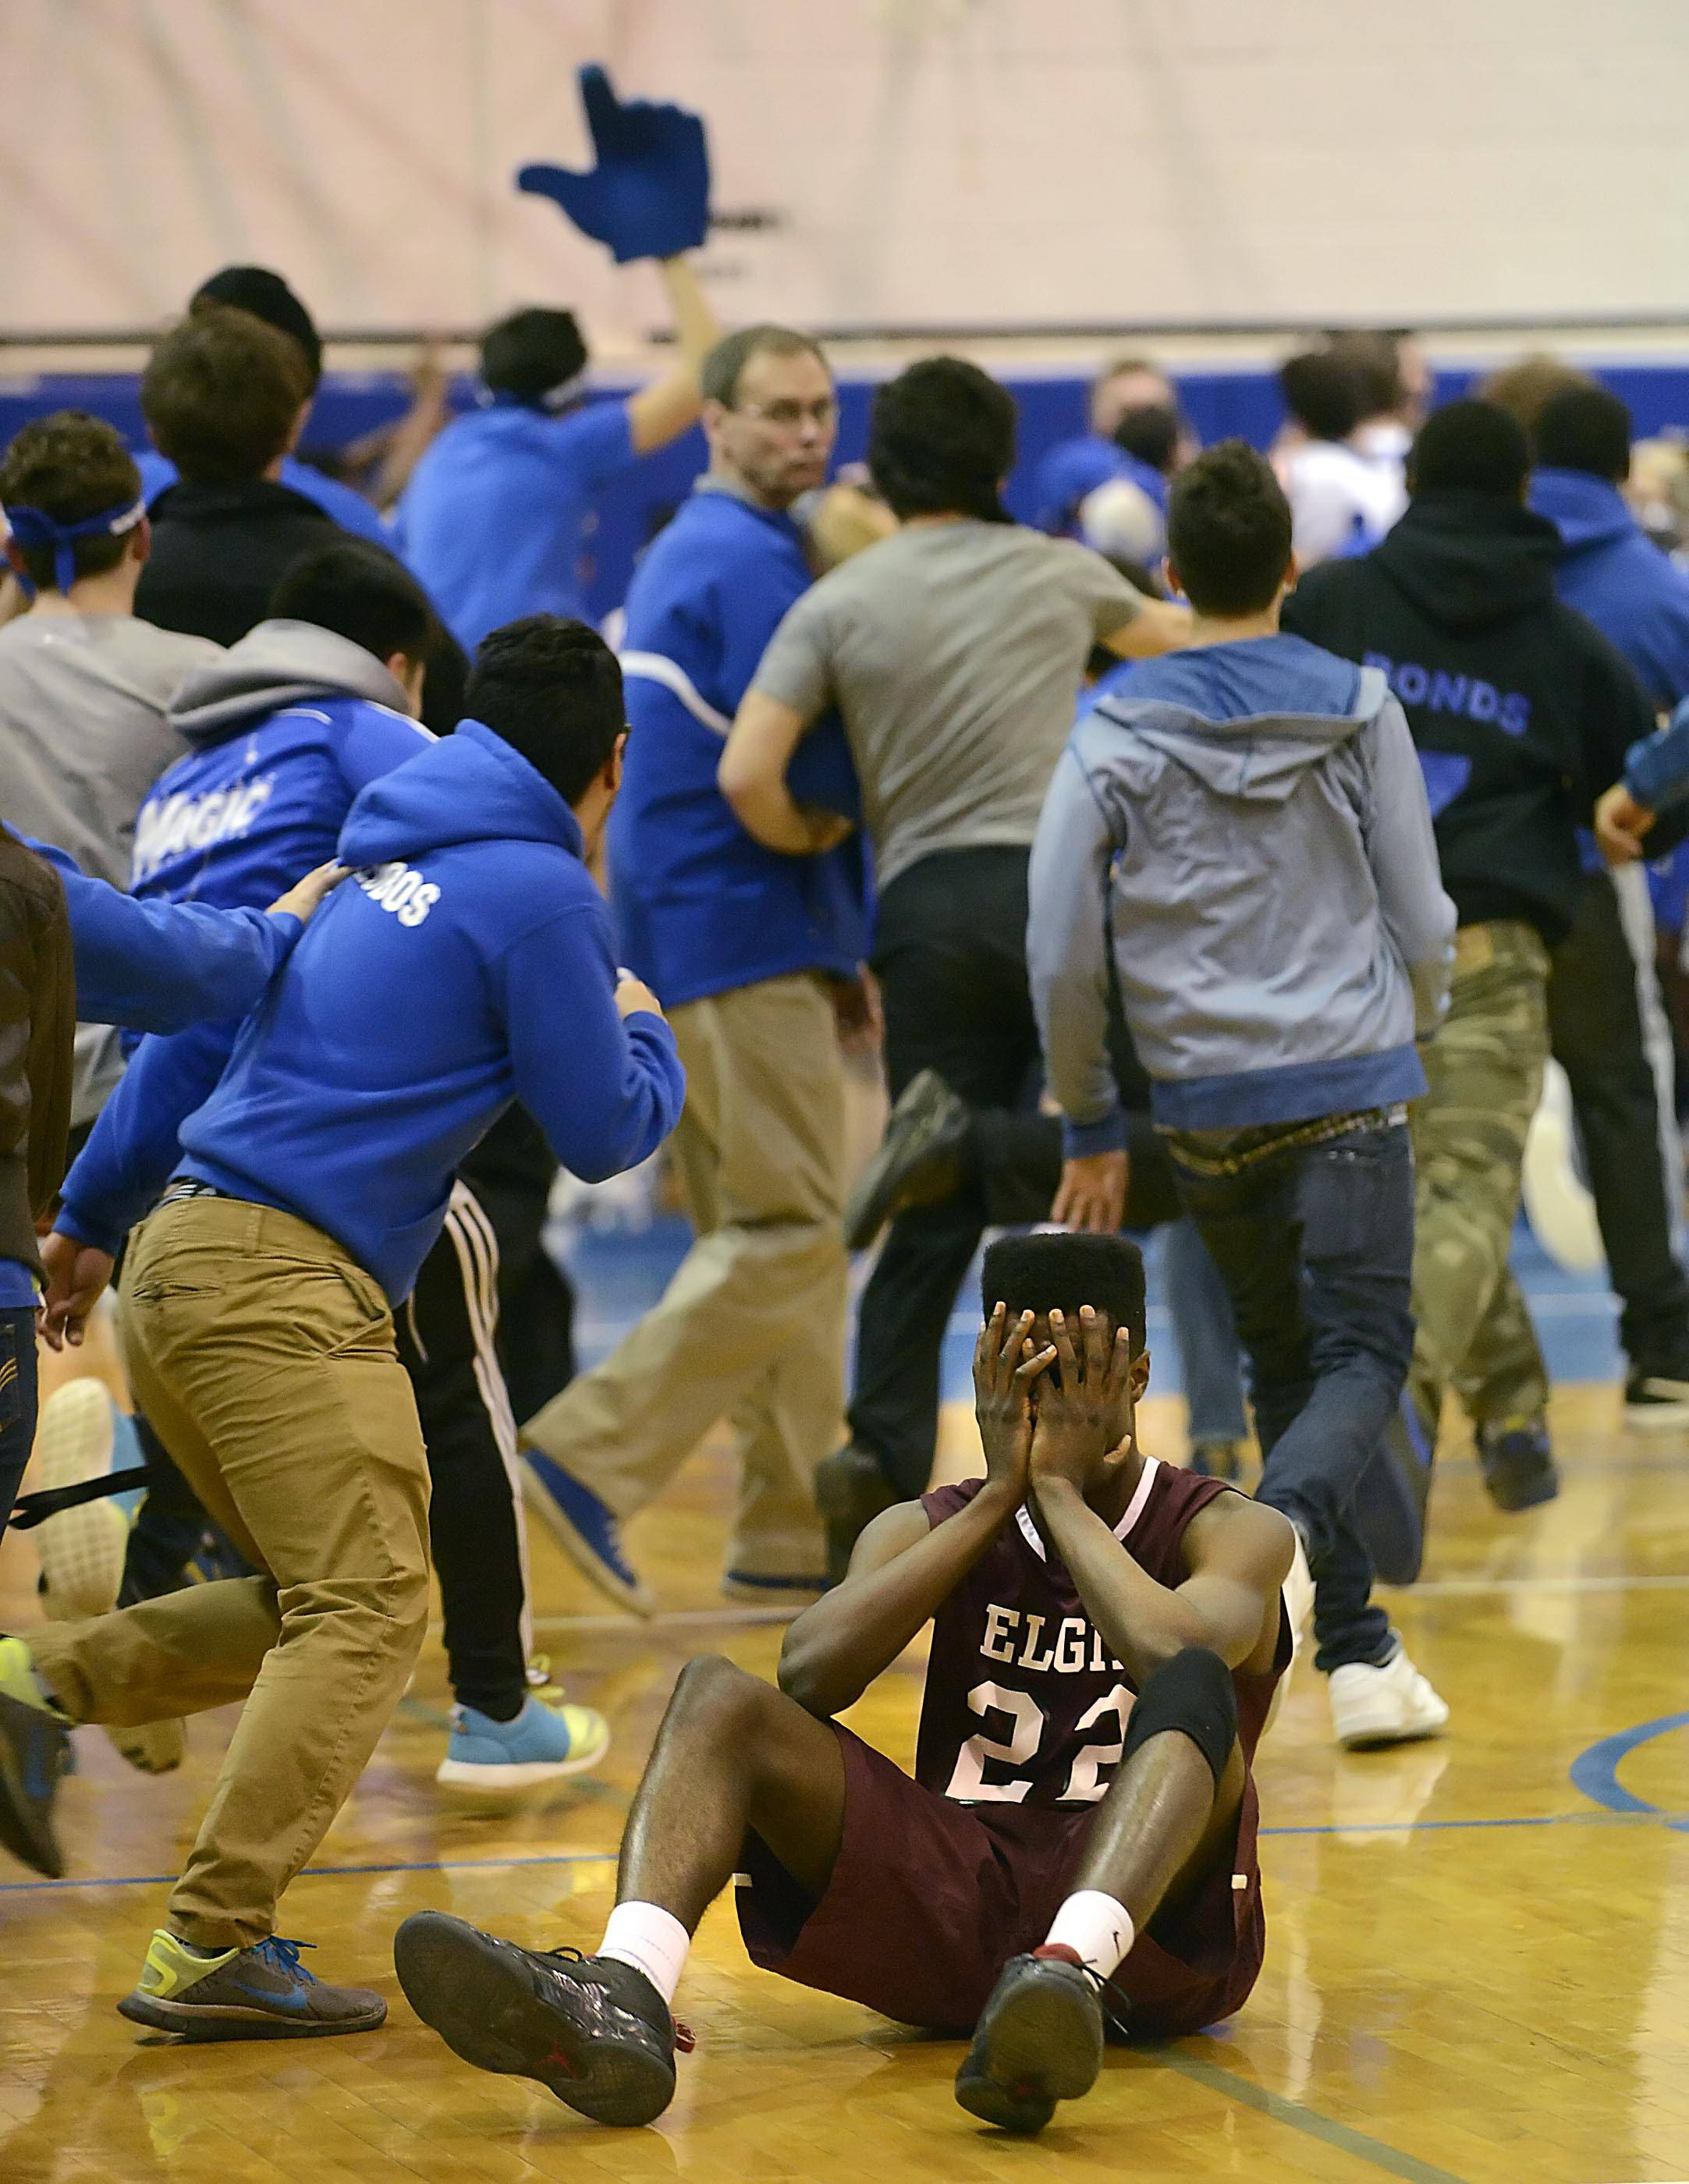 Elgin's Desmond Sanders reacts as Larkin students rush the floor after the Royals beat the Maroons in the final seconds of Friday's game in Elgin.